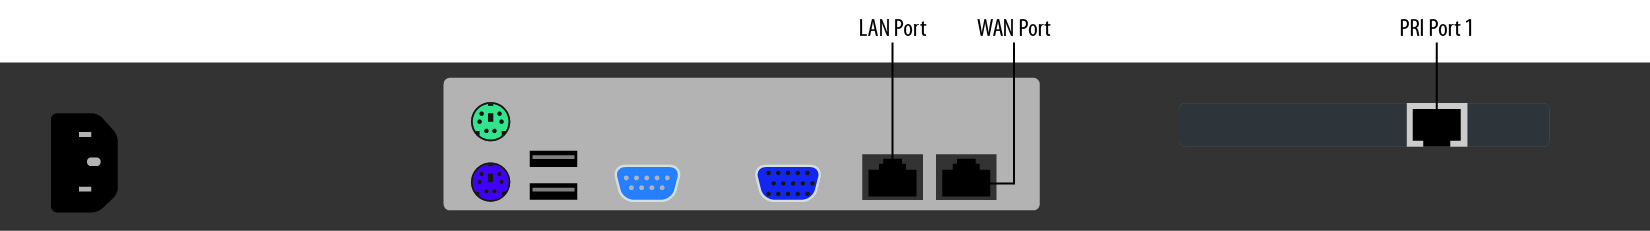 cudatel_port_diagrams-370.jpg